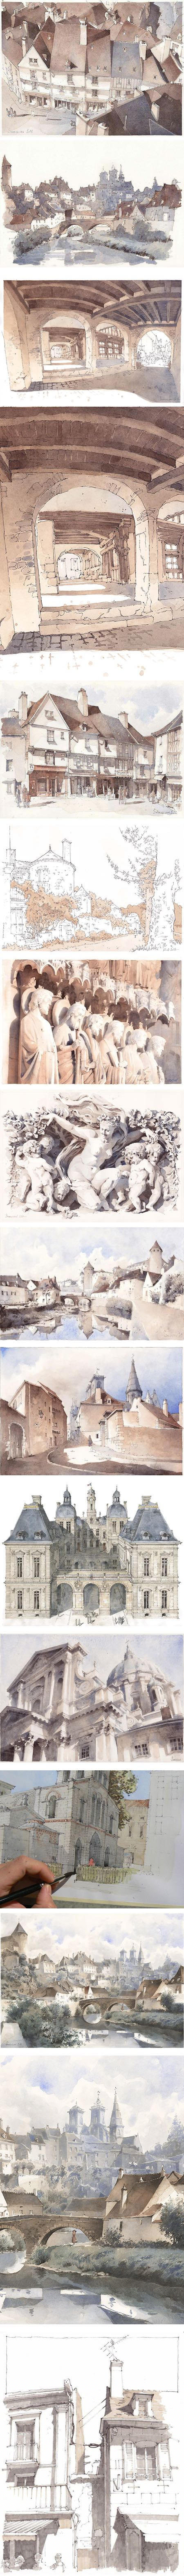 Jeremy Soheylian, French artist, urban sketching in pen and watercolor